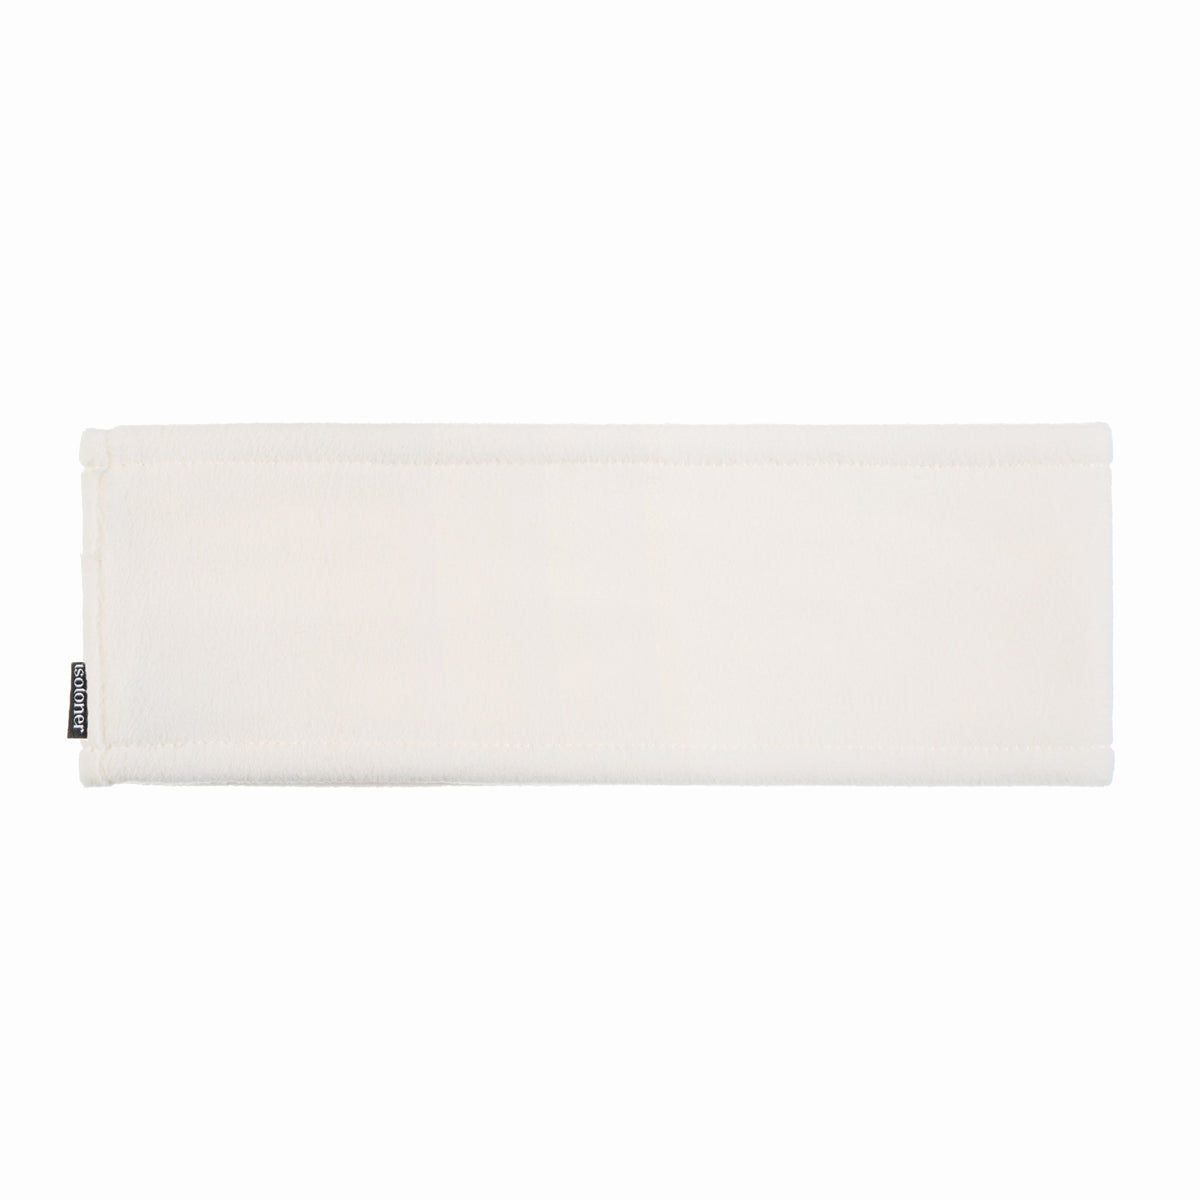 Women's Reversible Fleece Headband in Ivory